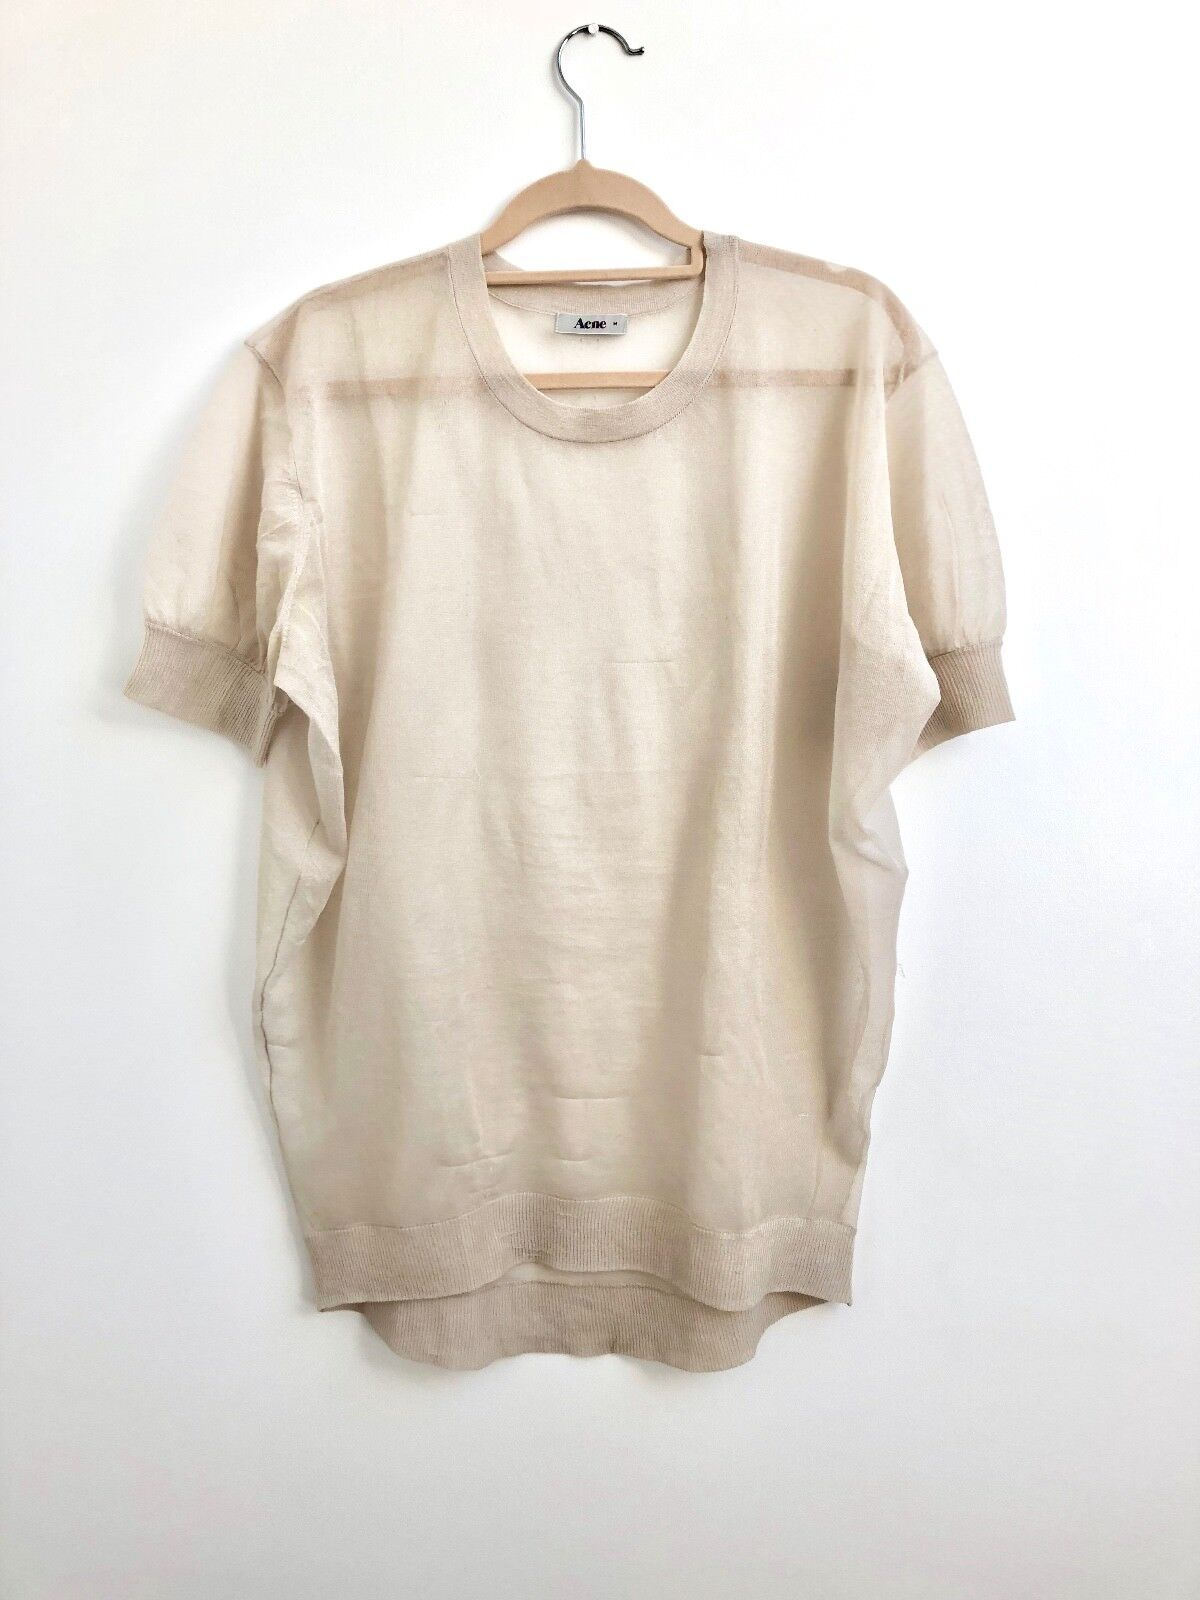 NEW ACNE CREPE SILK TOP OVERSIZED BEIGE SHEER UK S M L RRP UNISEX SOLD OUT